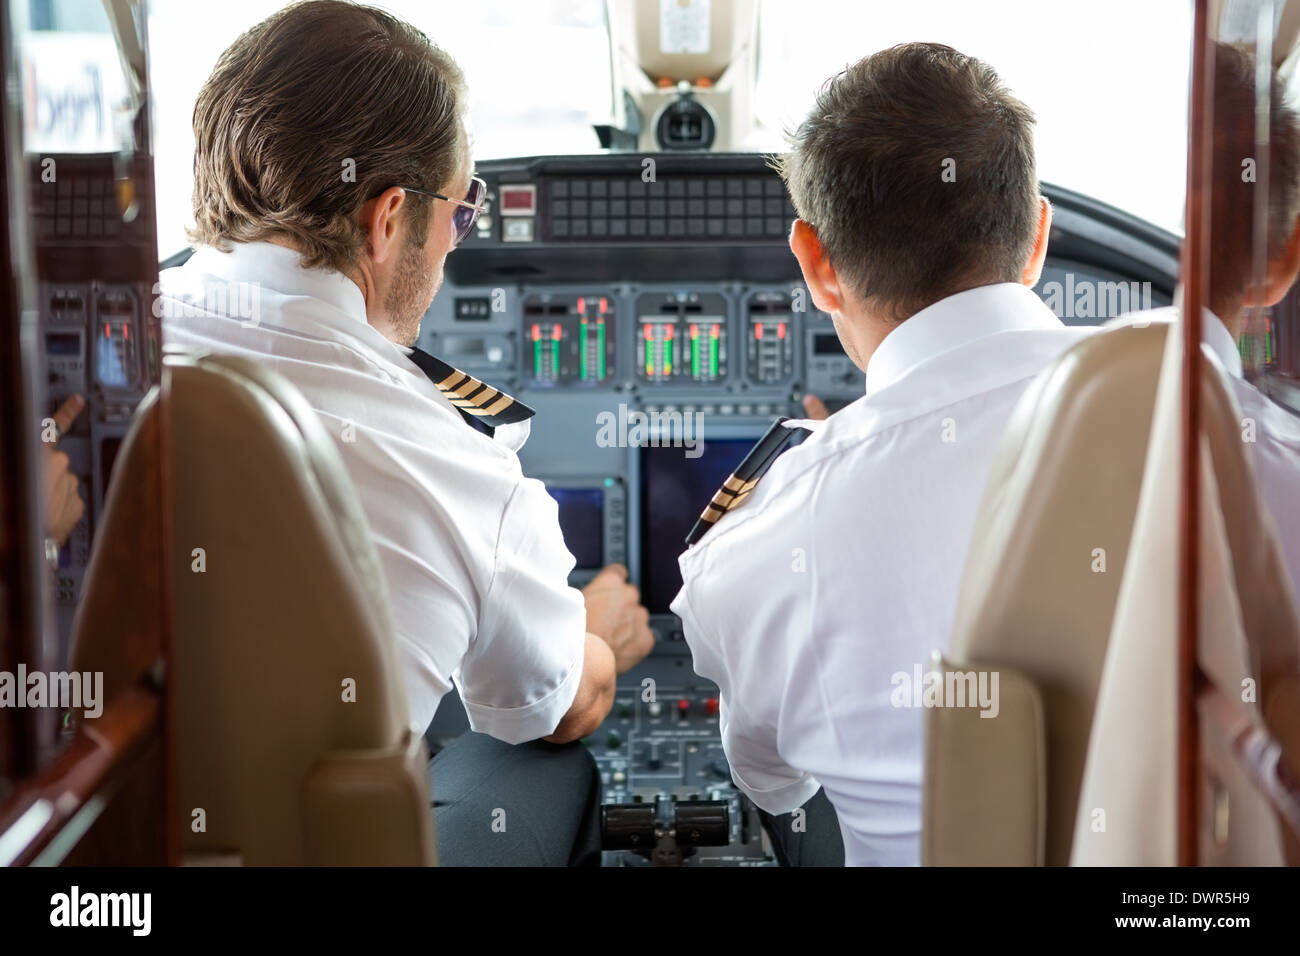 Pilot And Copilot In Private Jet Cockpit - Stock Image